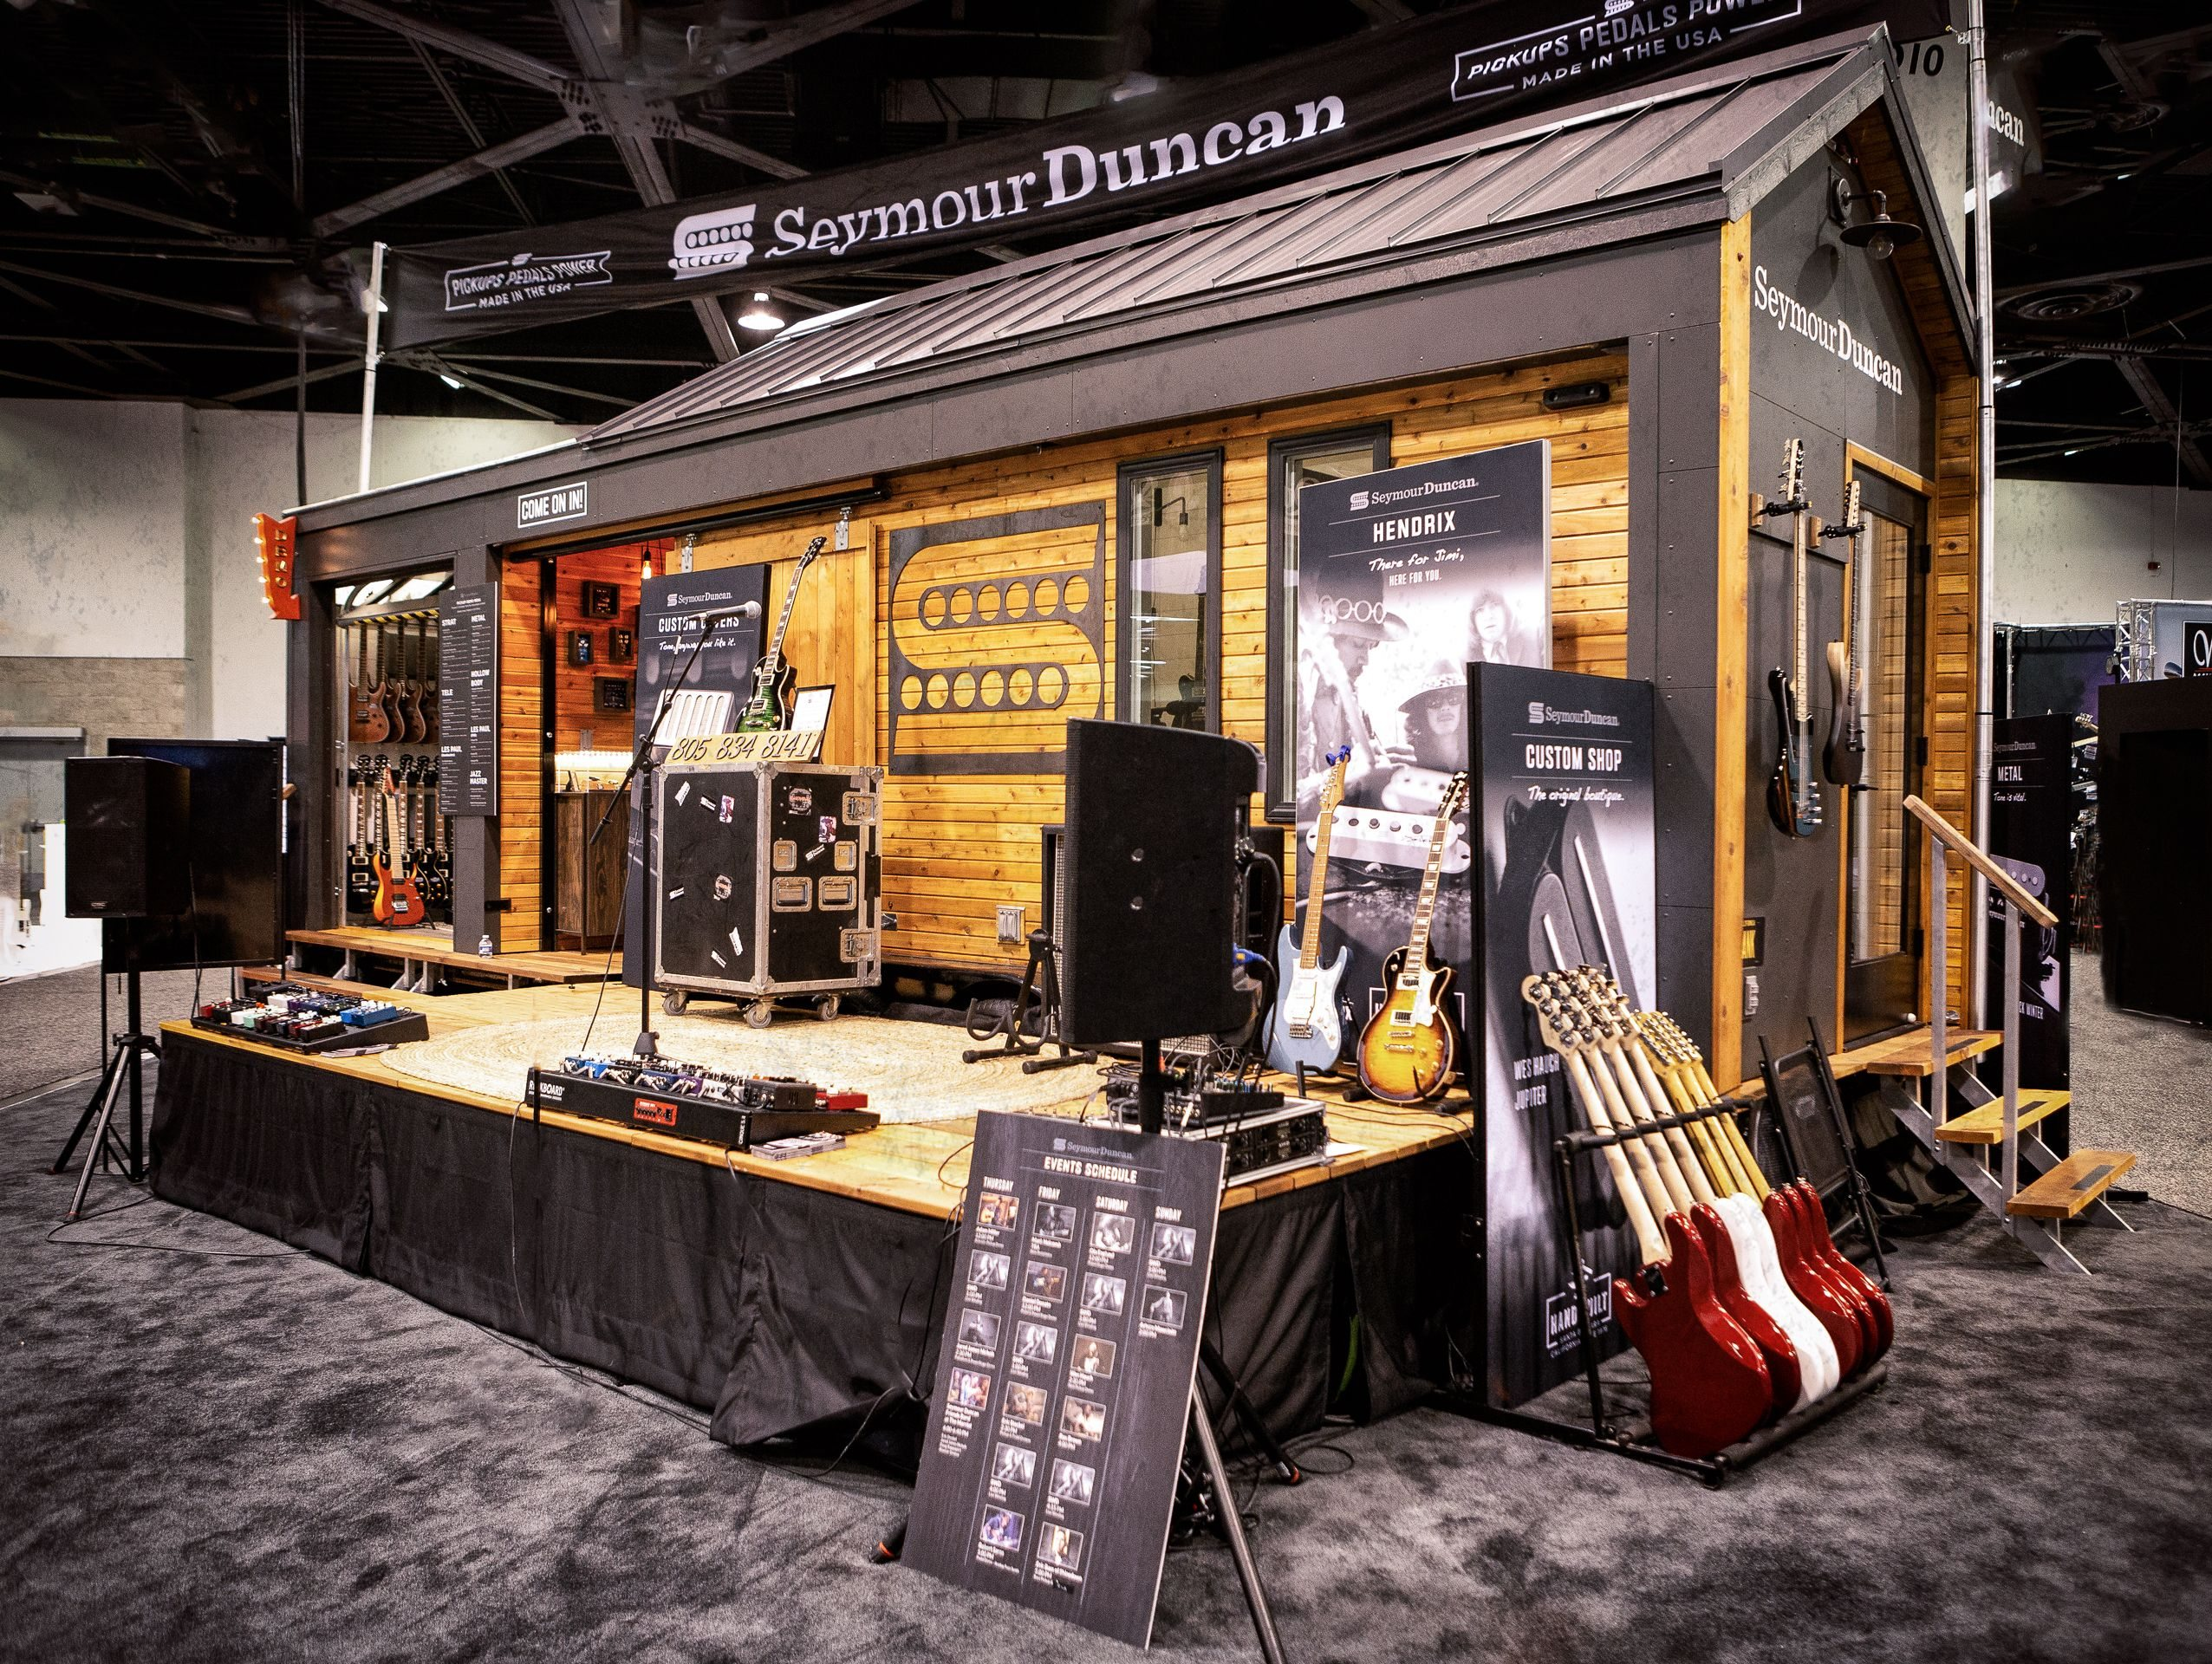 ROCK THE HOUSE 🏠 with Seymour Duncan and ESP Guitars! 🎸 - Seymour